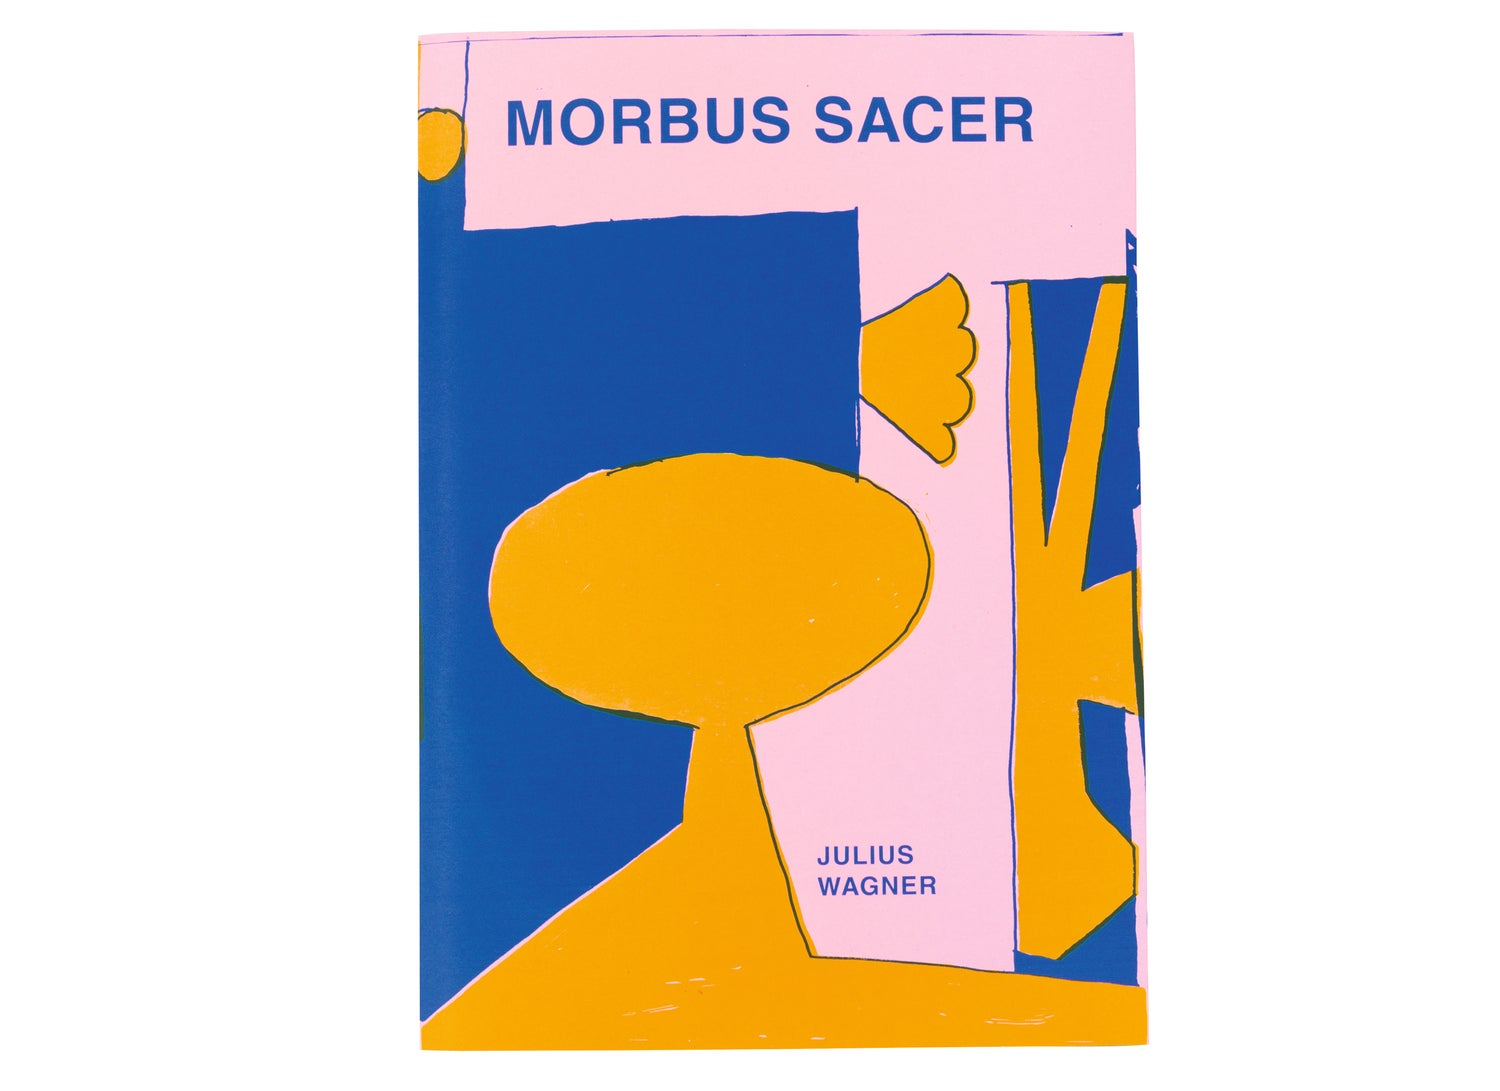 Image of Morbus Sacer